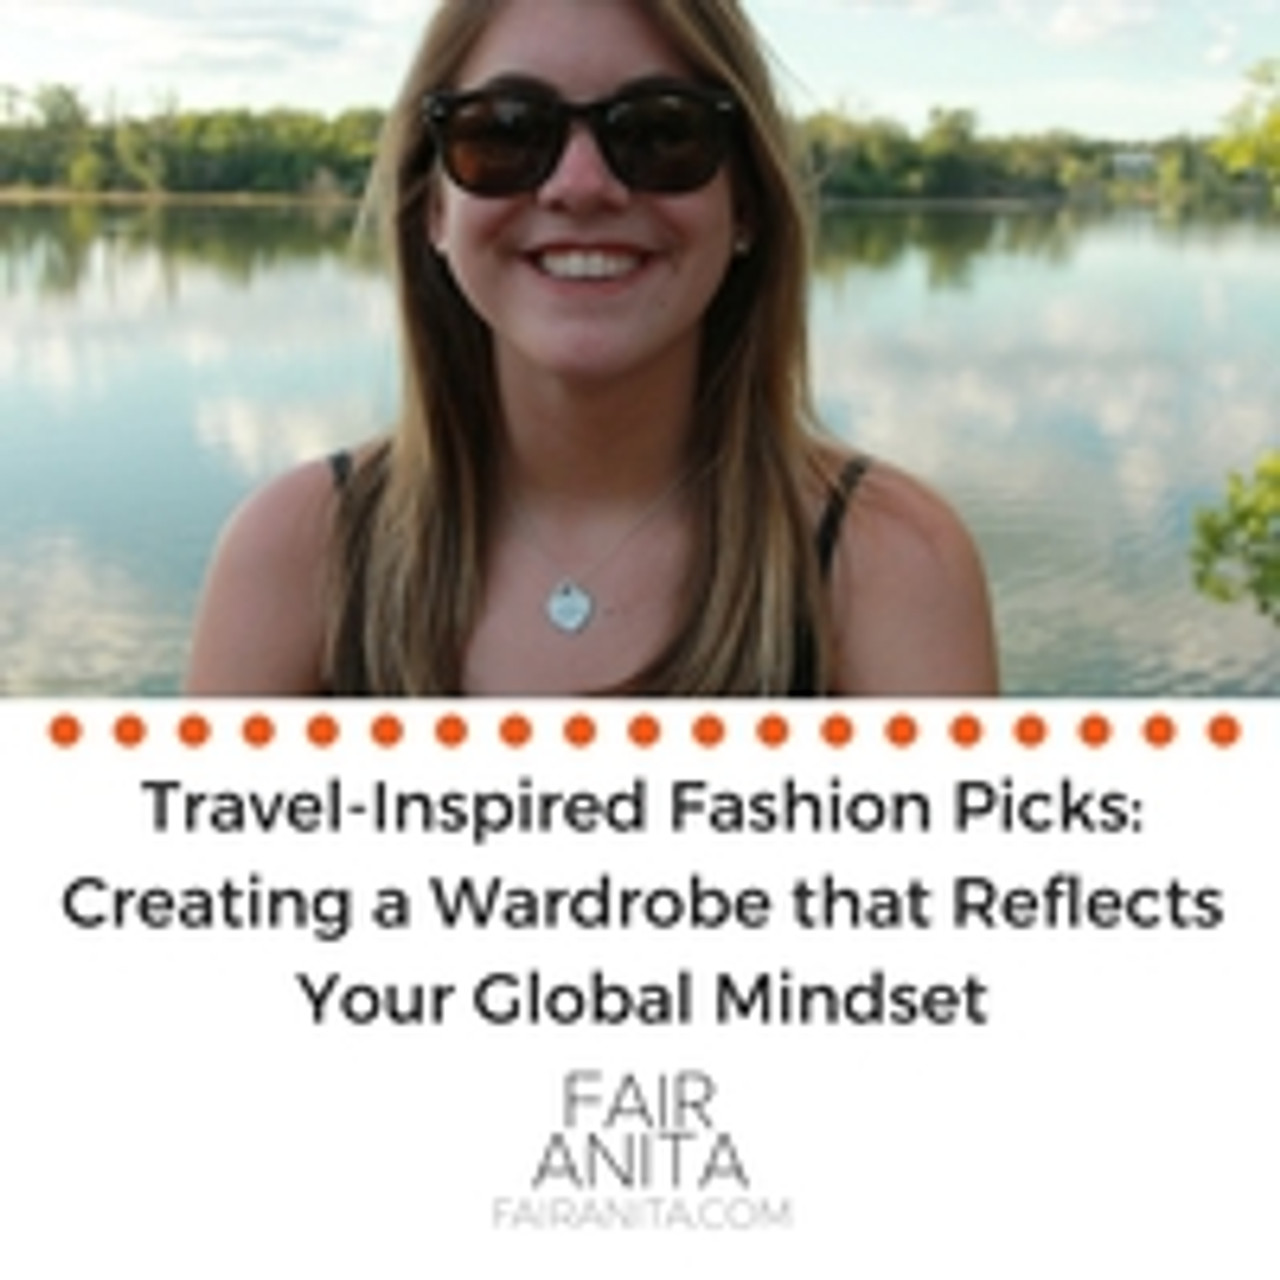 Travel-Inspired Fashion Picks: Creating a Wardrobe that Reflects Your Global Mindset